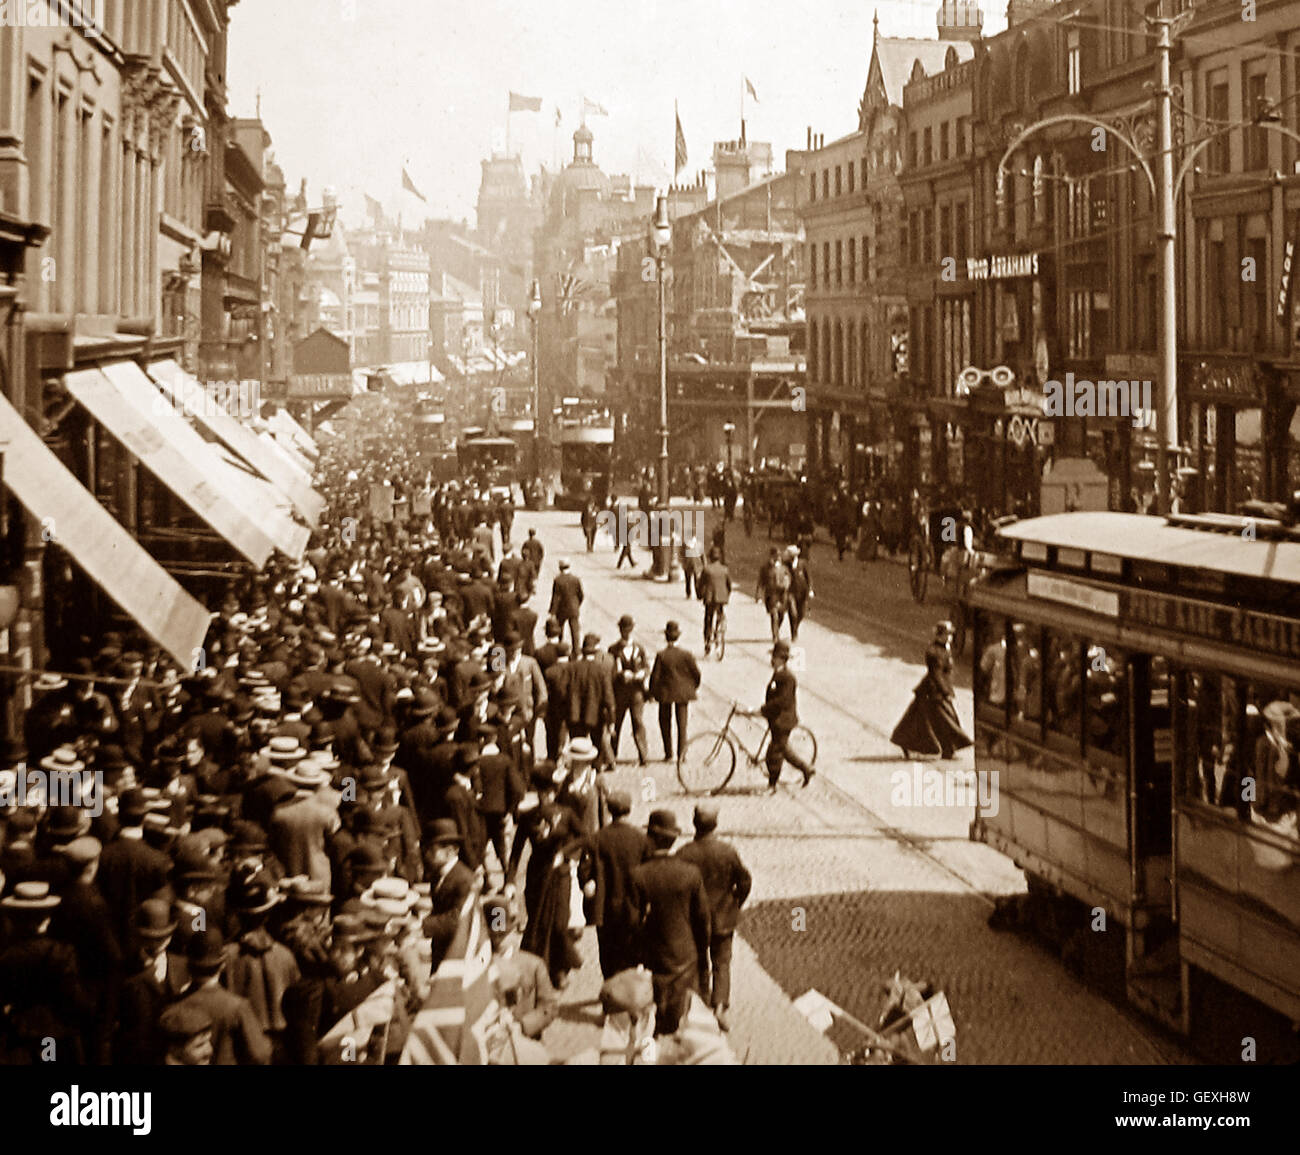 Mafeking Day, Lord Street, Liverpool - early 1900s Stock Photo